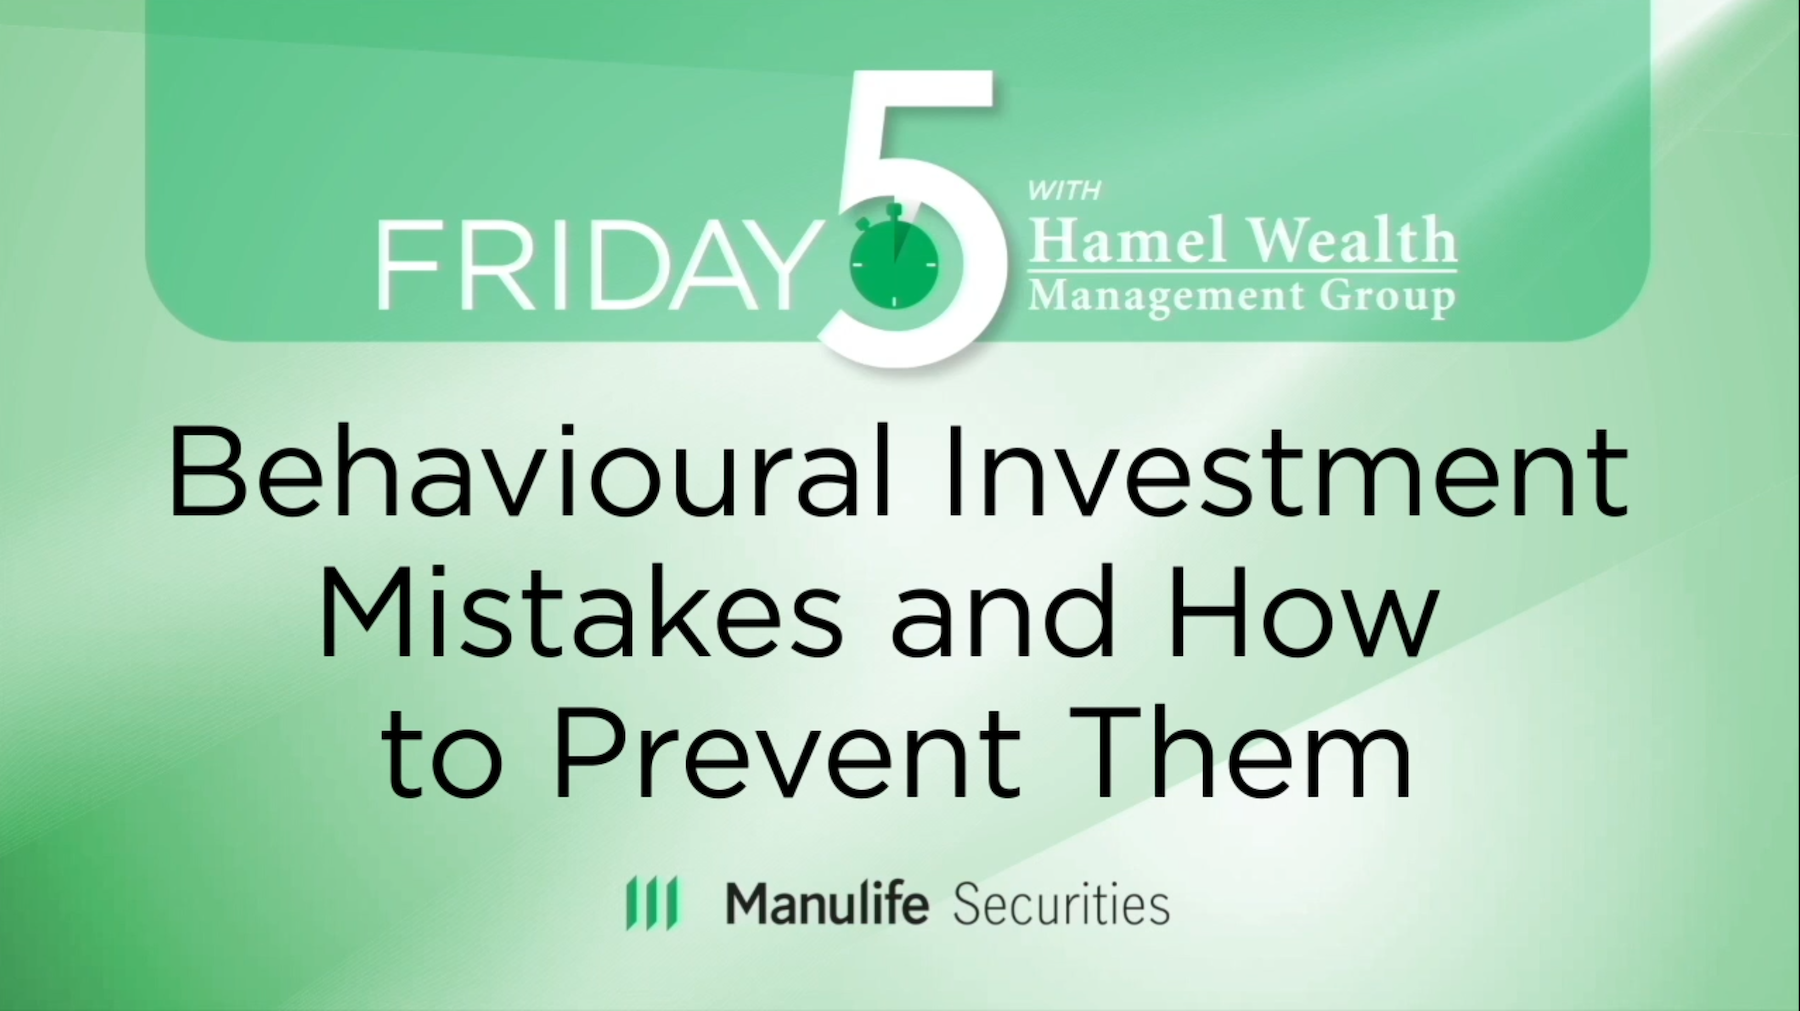 Friday 5 - Behavioural Investment Mistakes and How To Prevent Them - Craig Basinger Thumbnail